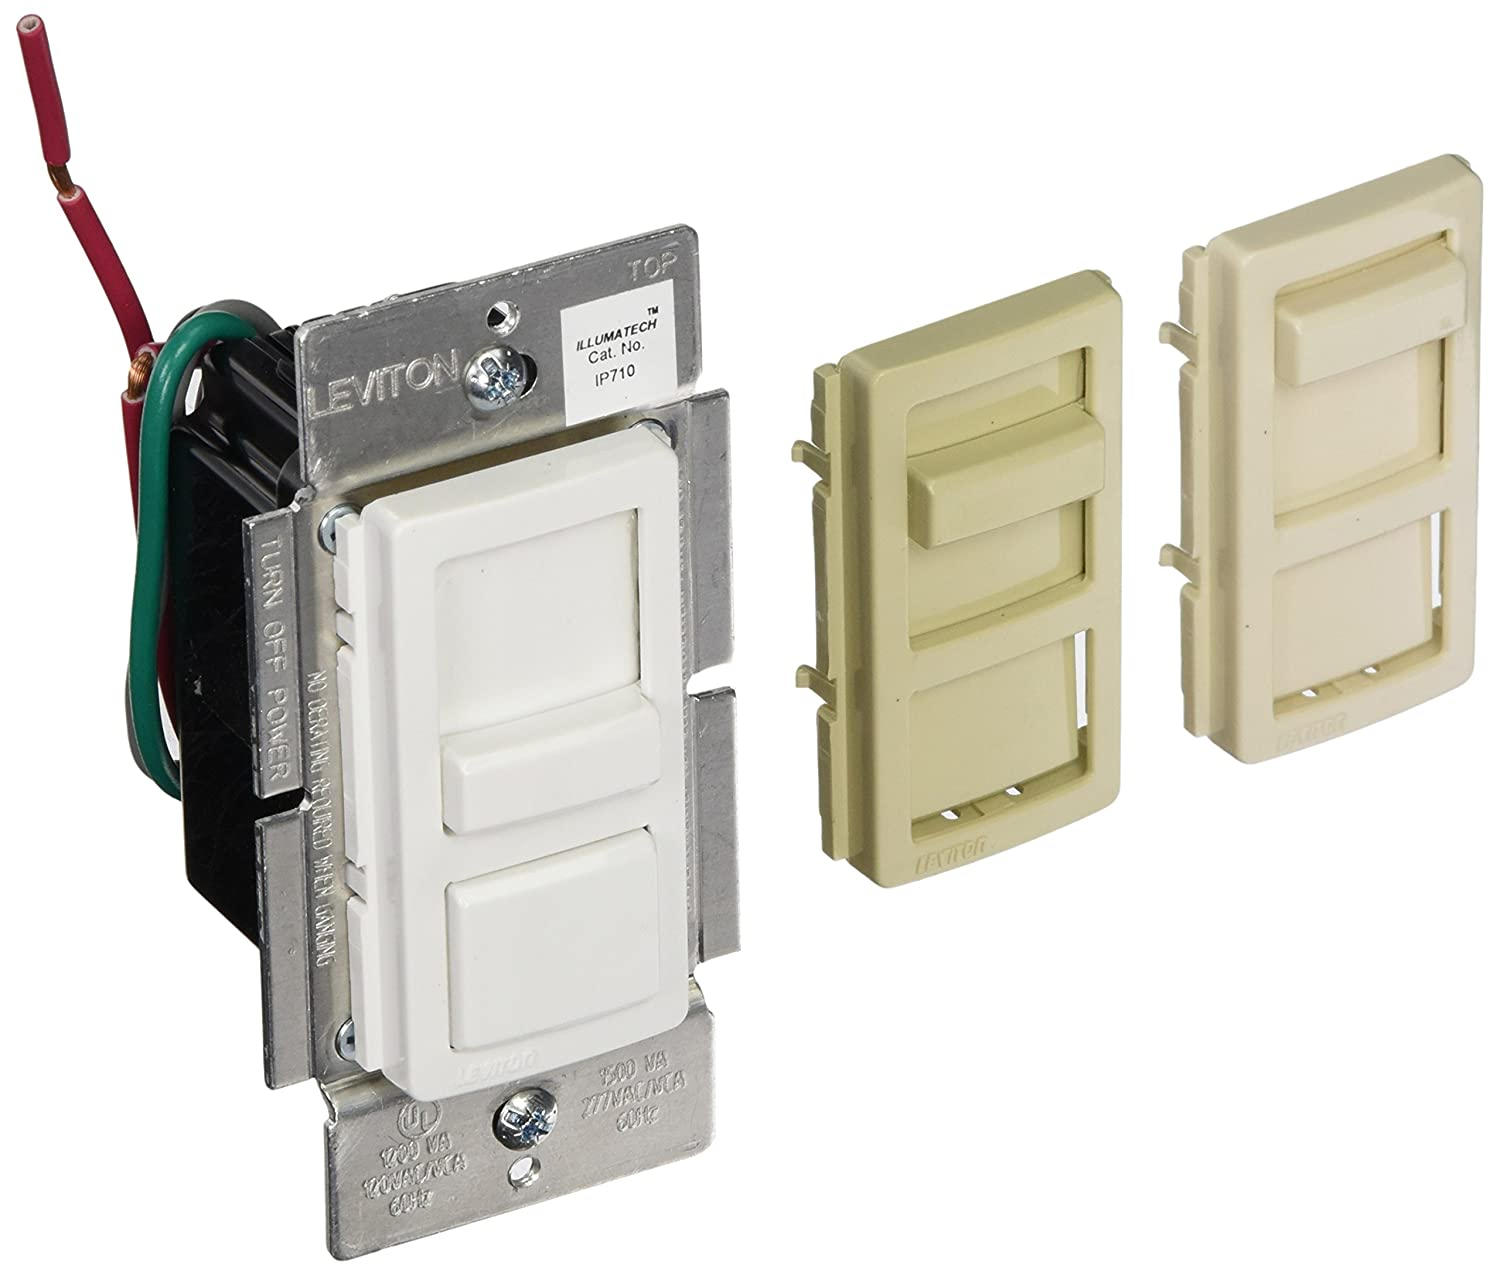 Leviton IP710-LFZ Illumatech LED Dimmer for 0-10V Power Supplies - Wall  Dimmer Switches - Amazon.com